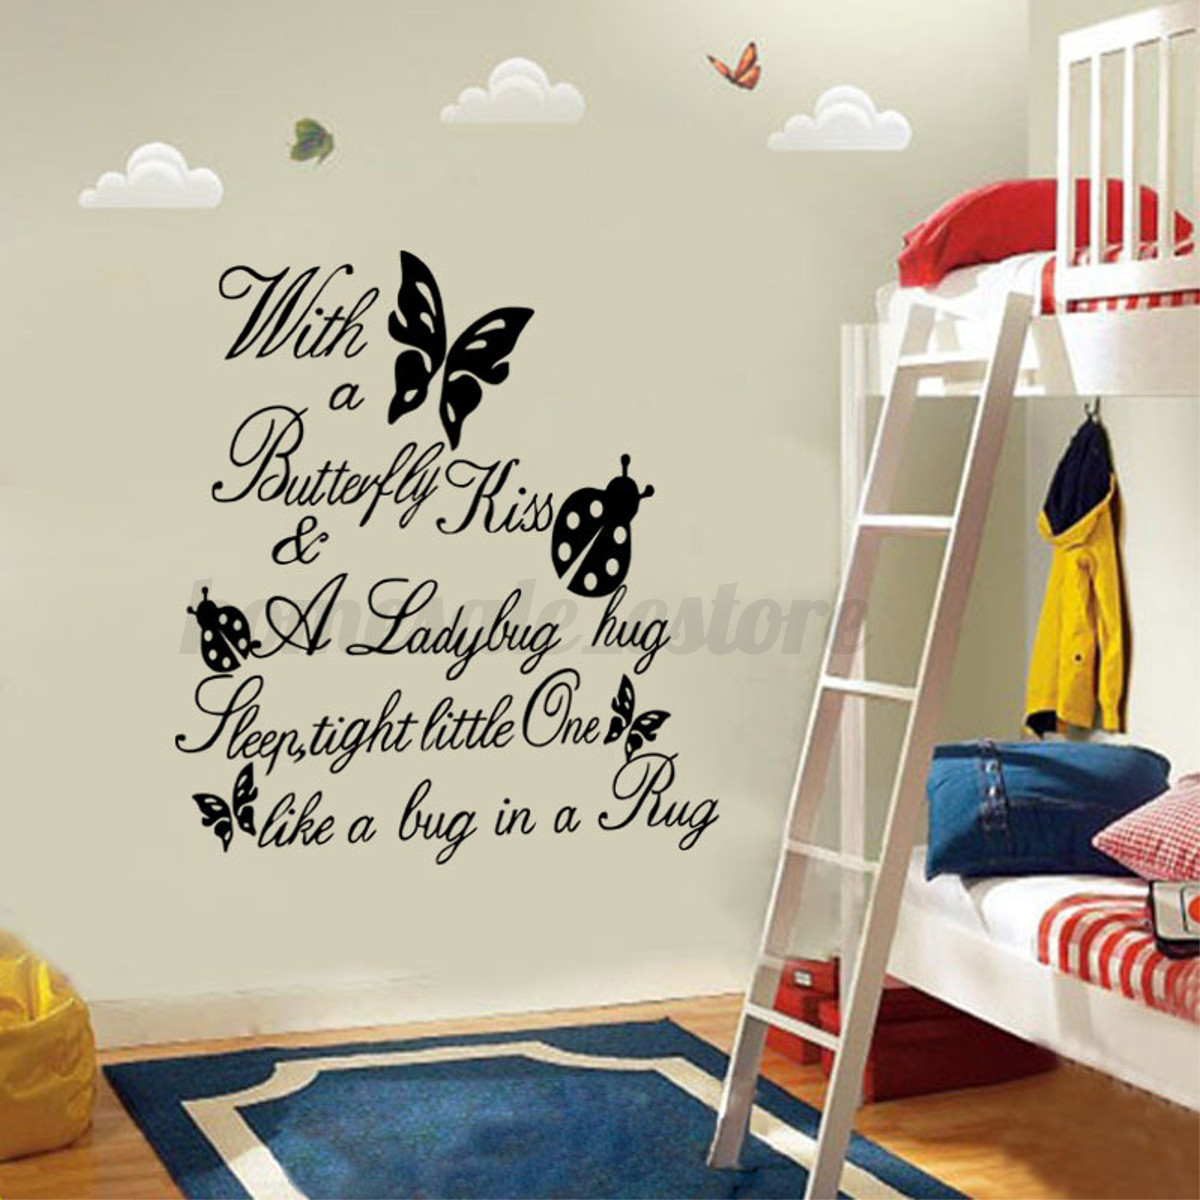 wall decal family art bedroom decor family diy removable art vinyl quote wall stickers